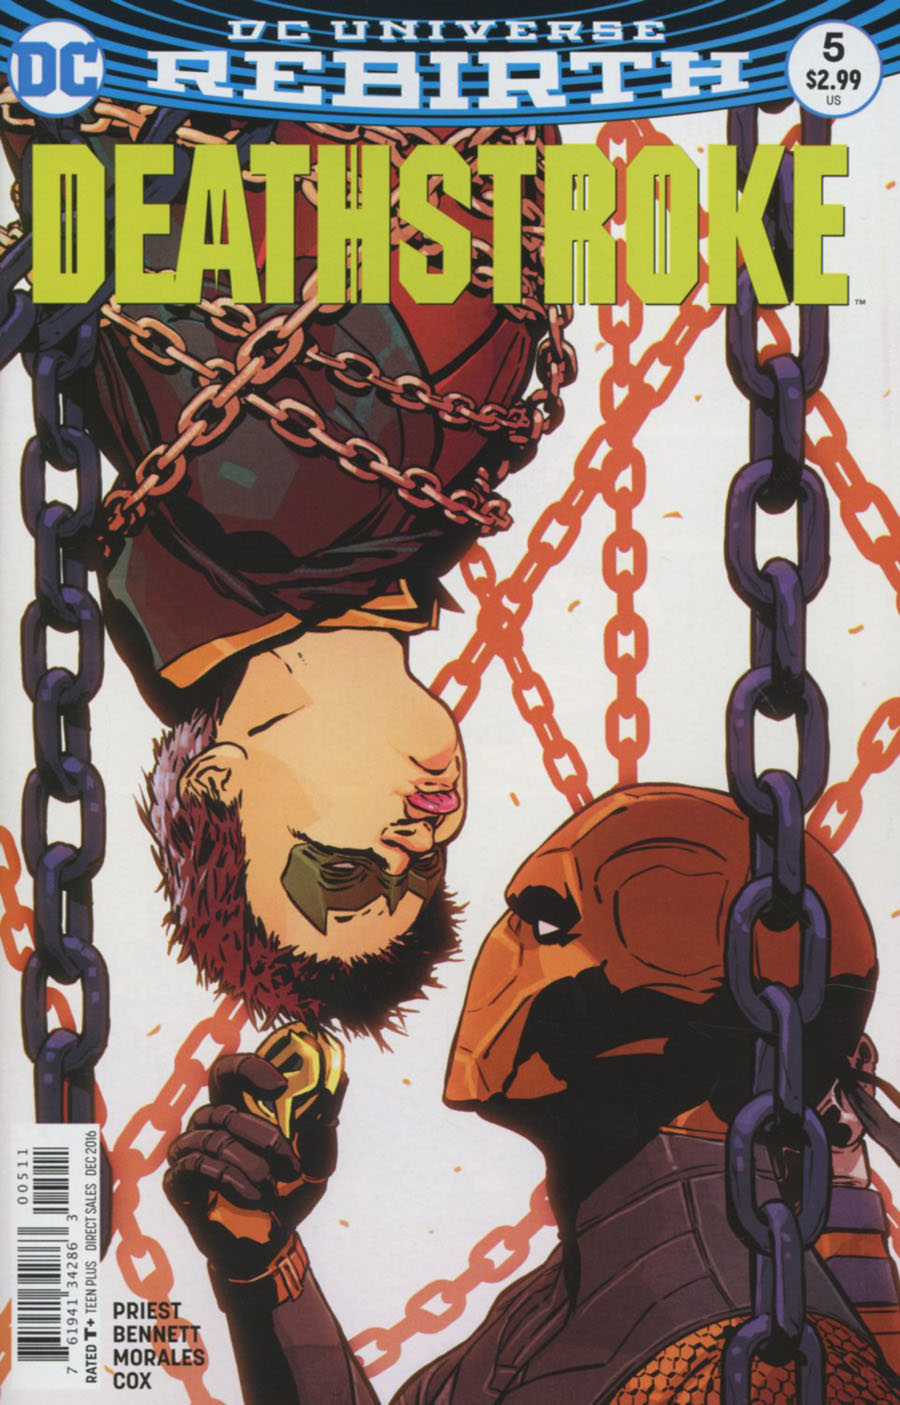 Deathstroke Vol 4 #5 Cover A Regular Aco Cover